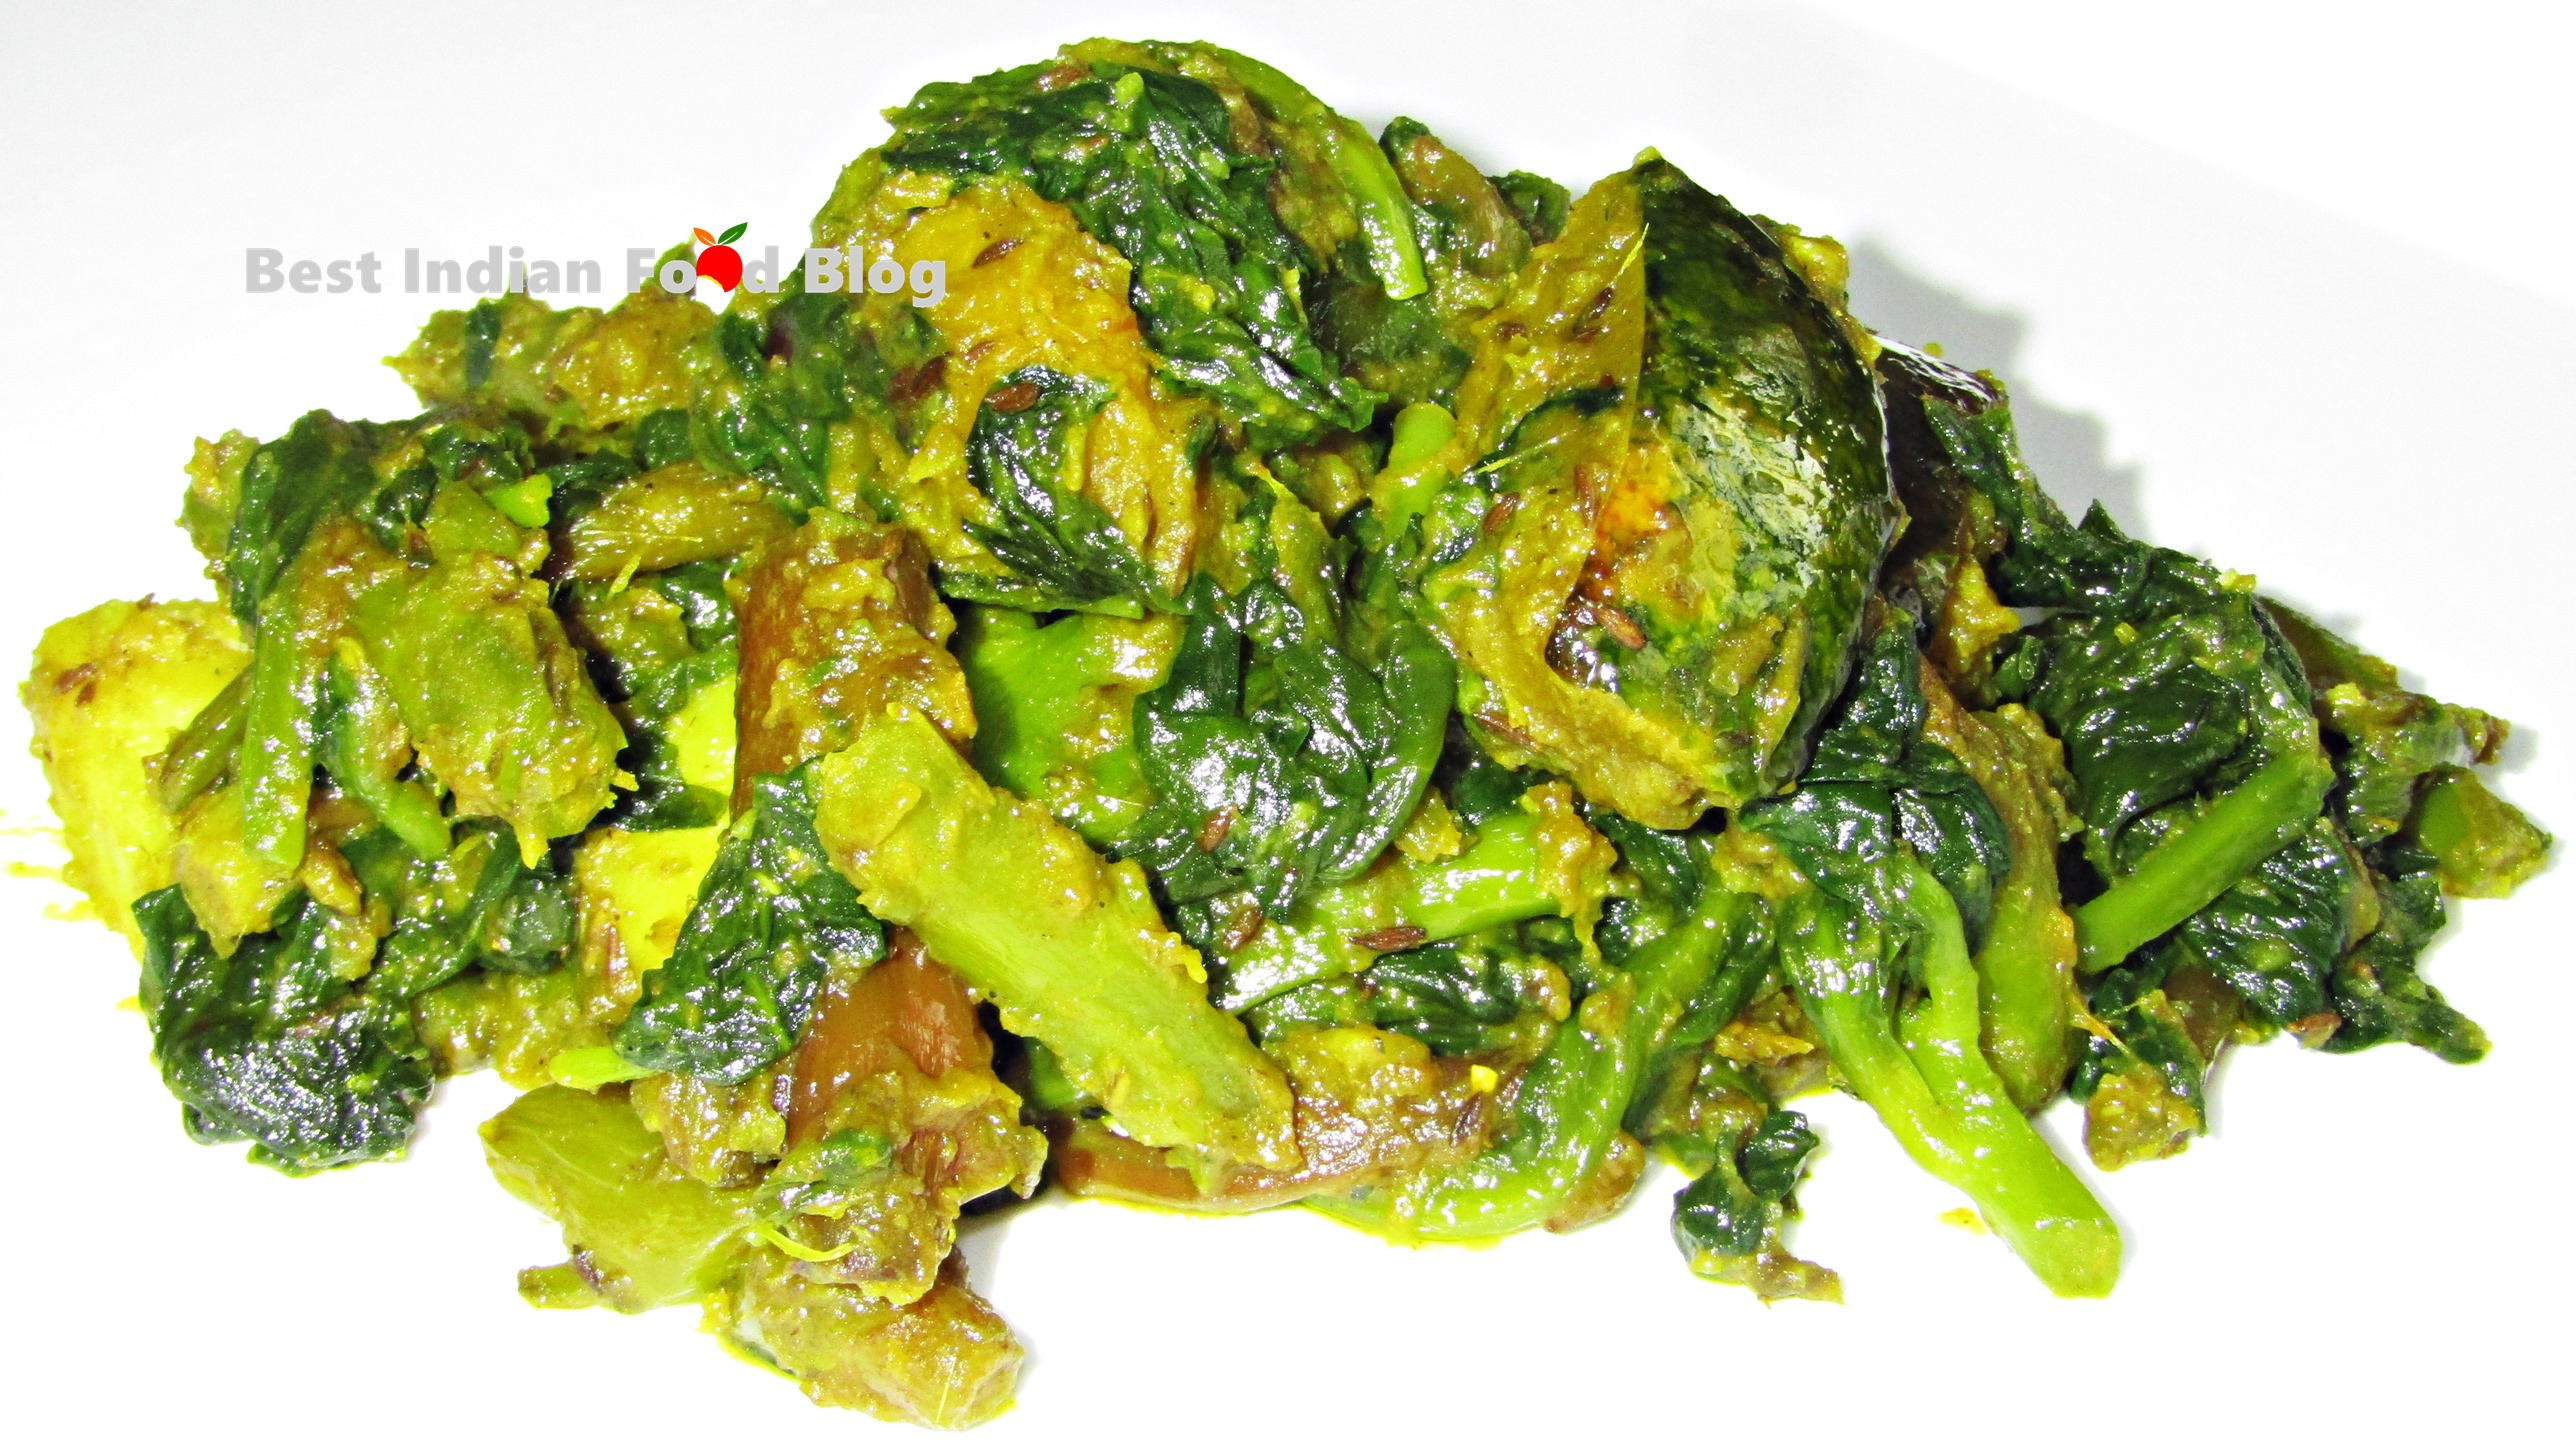 Pui Saag Ghanto from West Bengal, India | Best Indian Food Blog